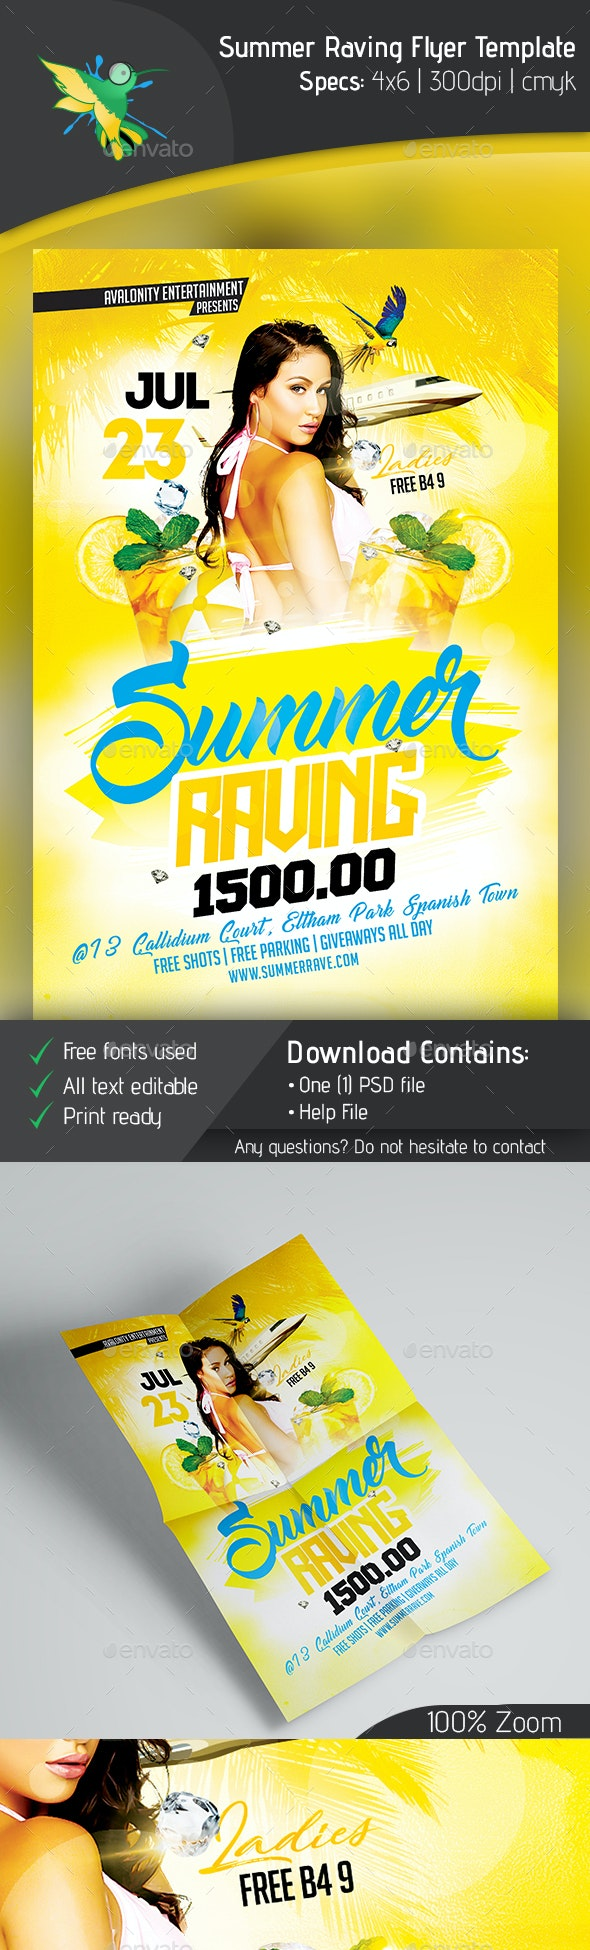 Summer Raving Flyer Template - Clubs & Parties Events